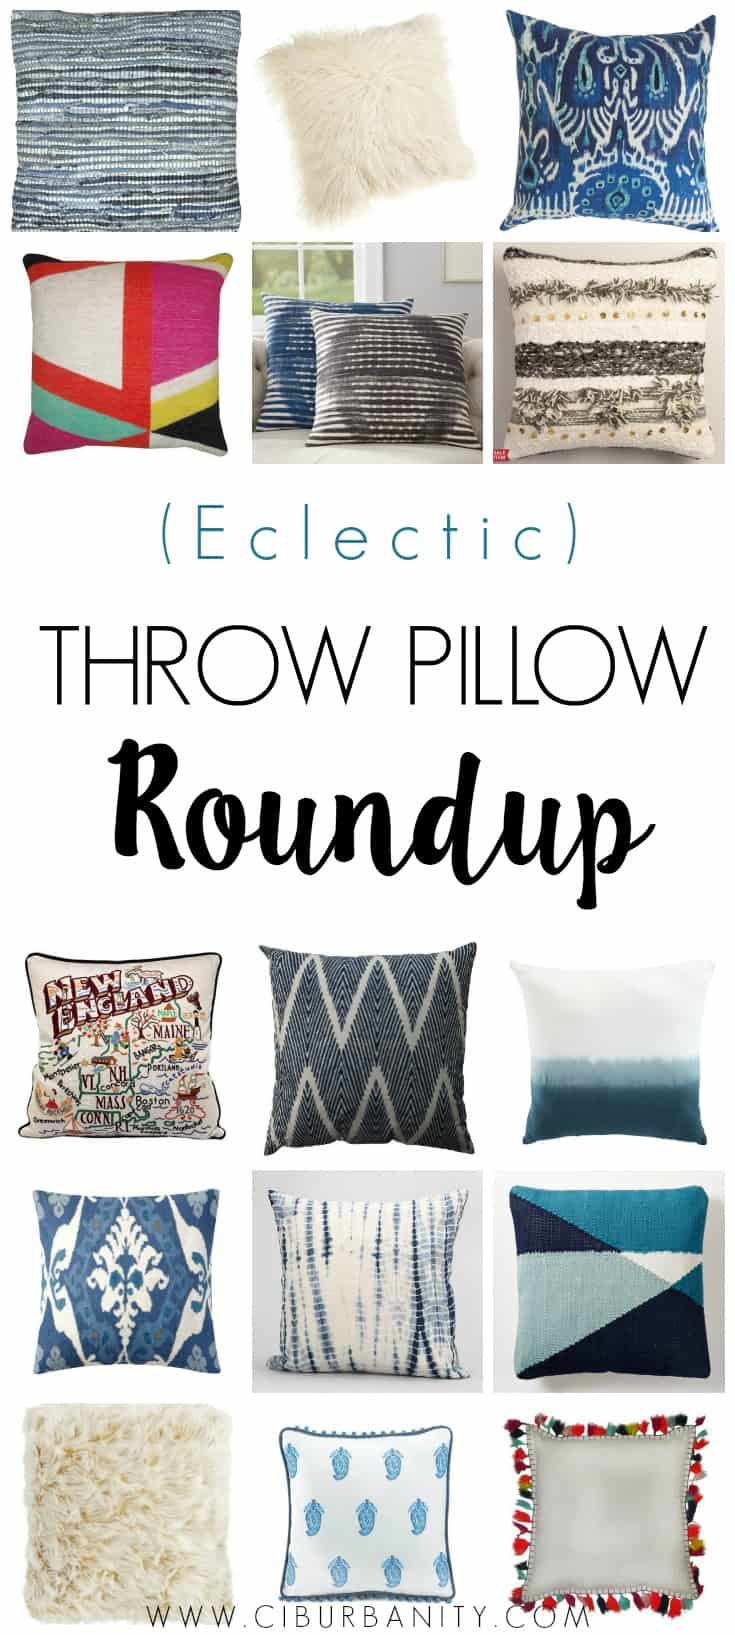 Pillow round up